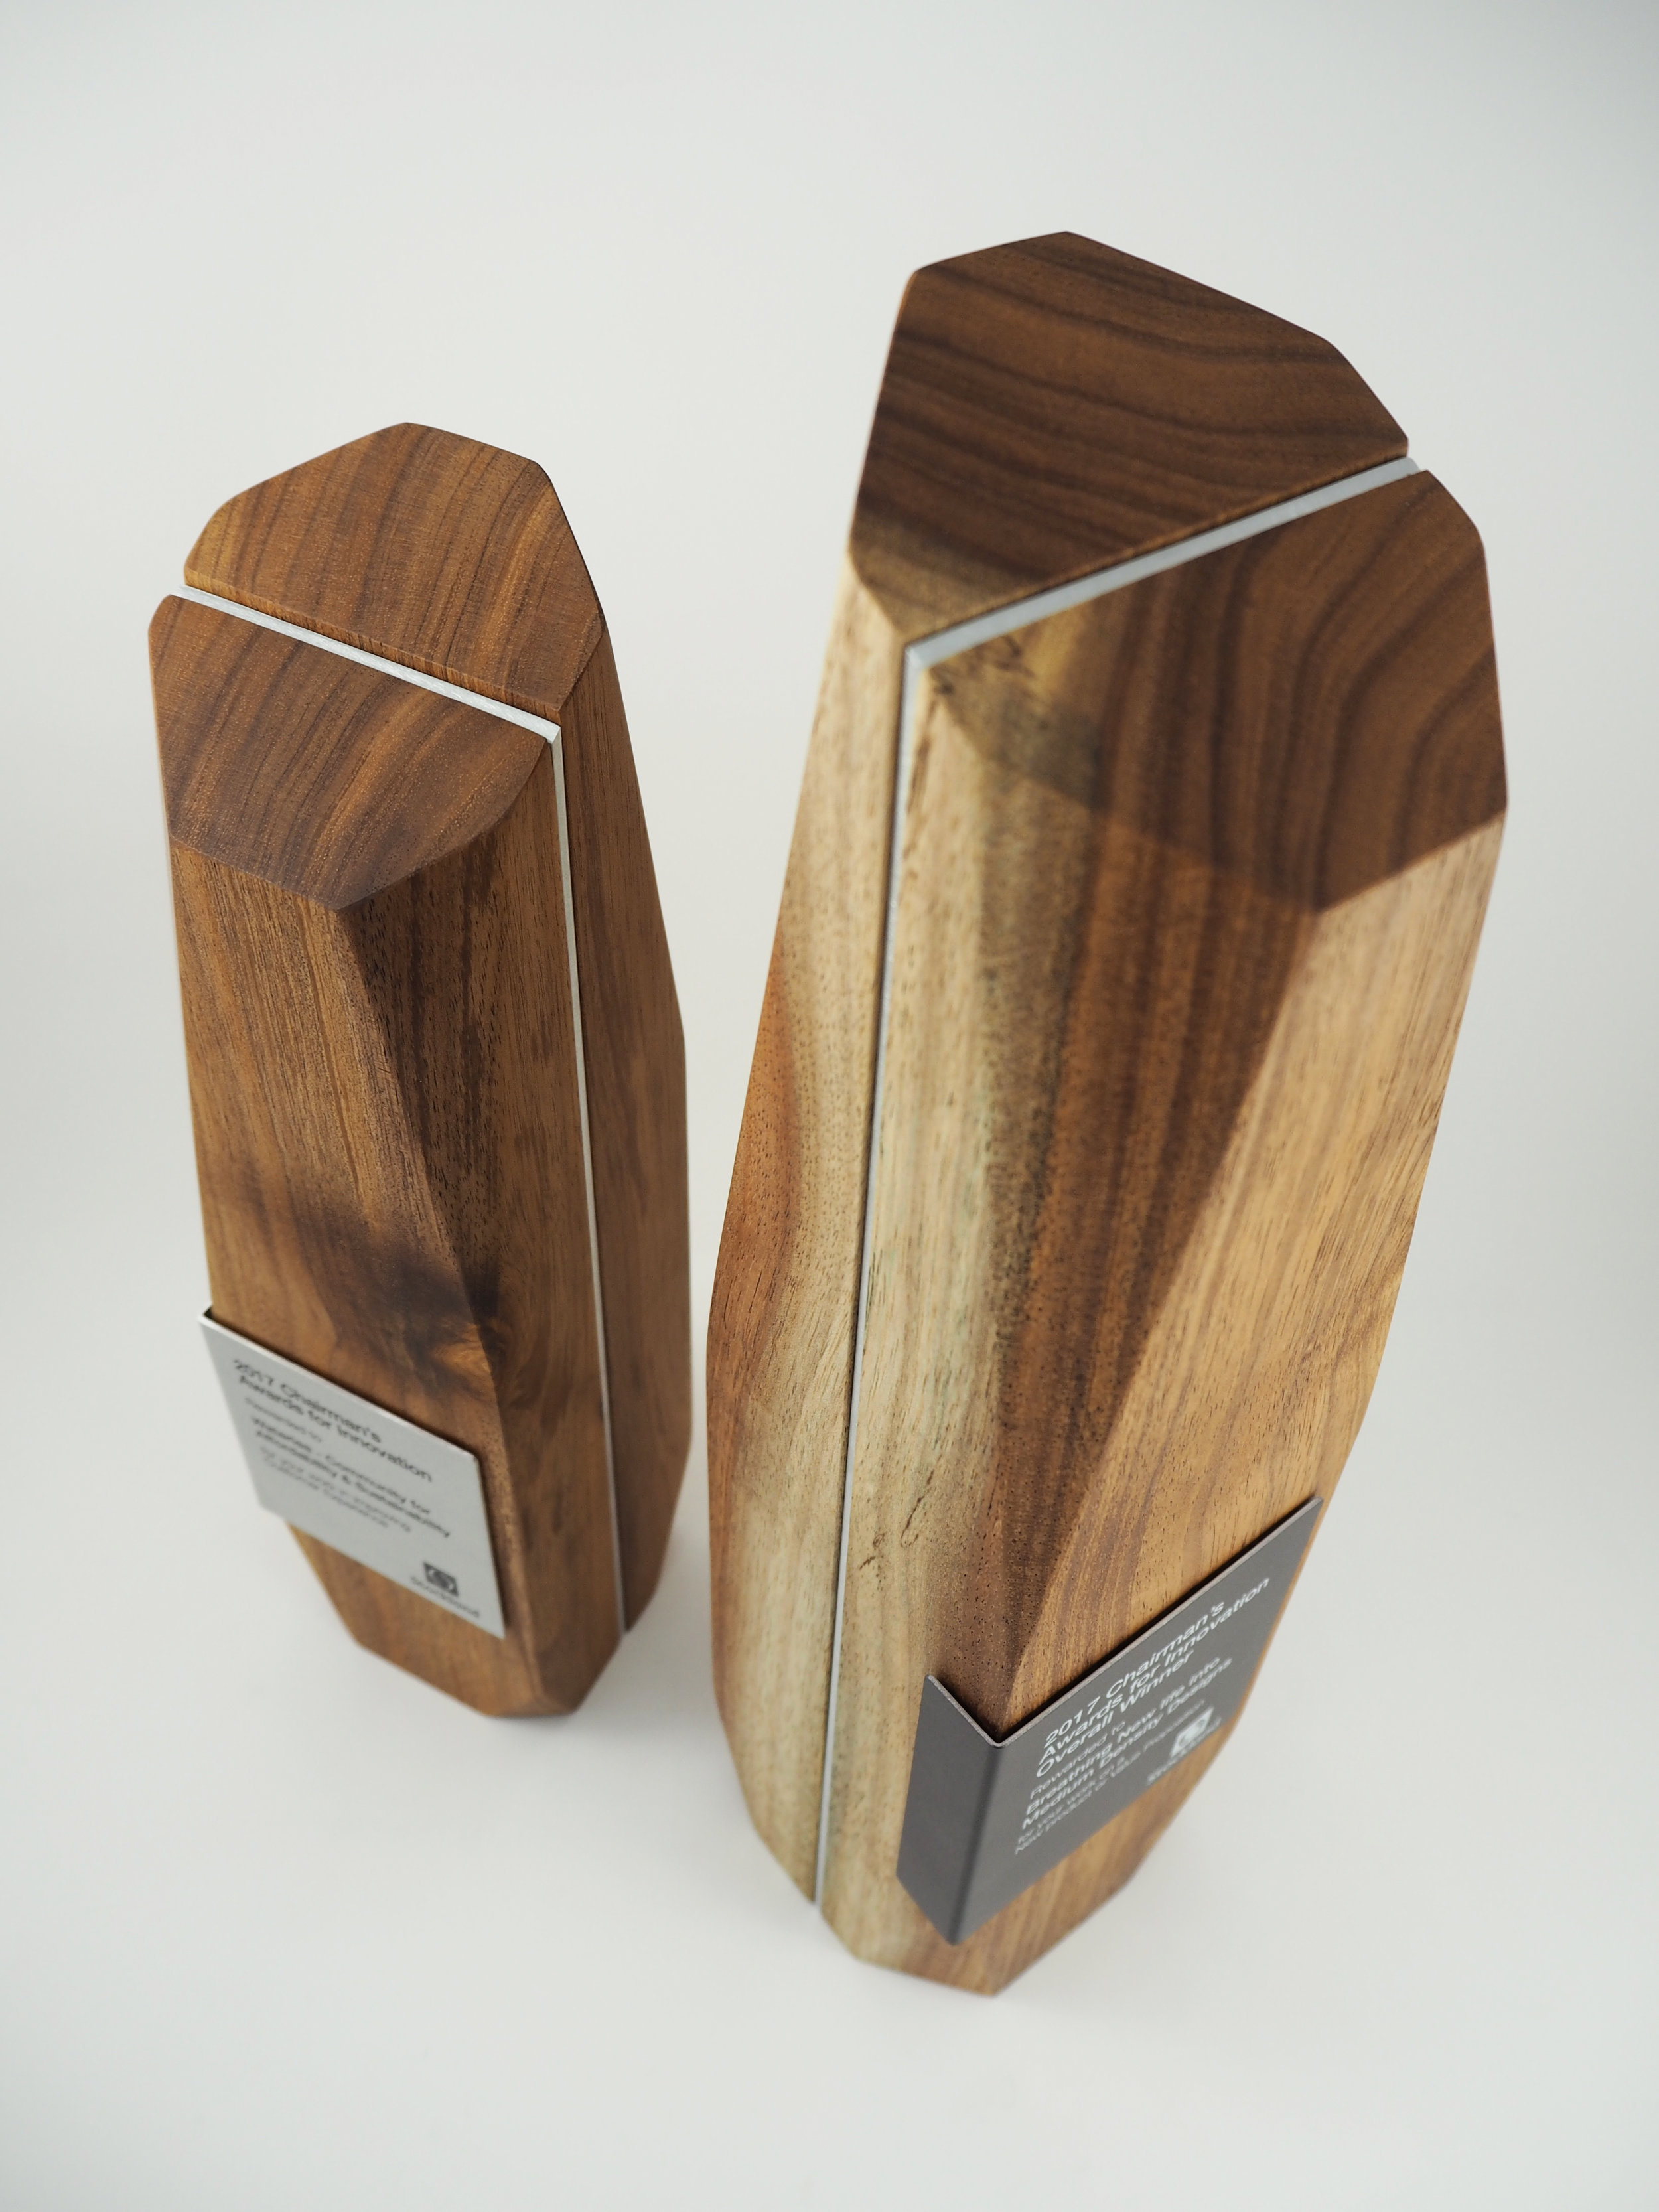 Stockland-Chairmans-timber-eco-trophy-awards-06.jpg